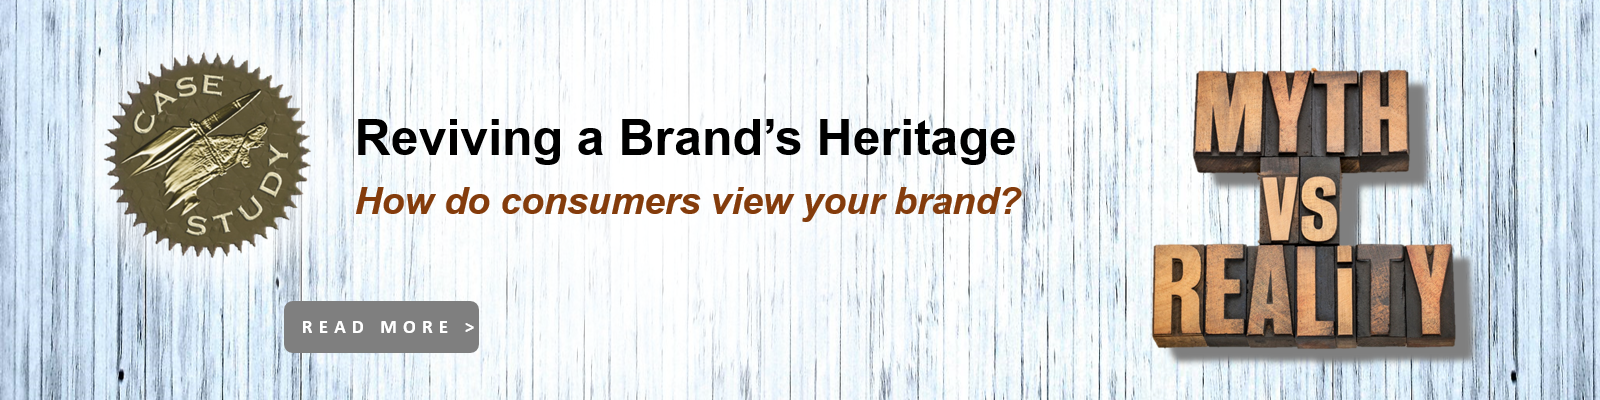 reviving-a-brands-heritage-banner3